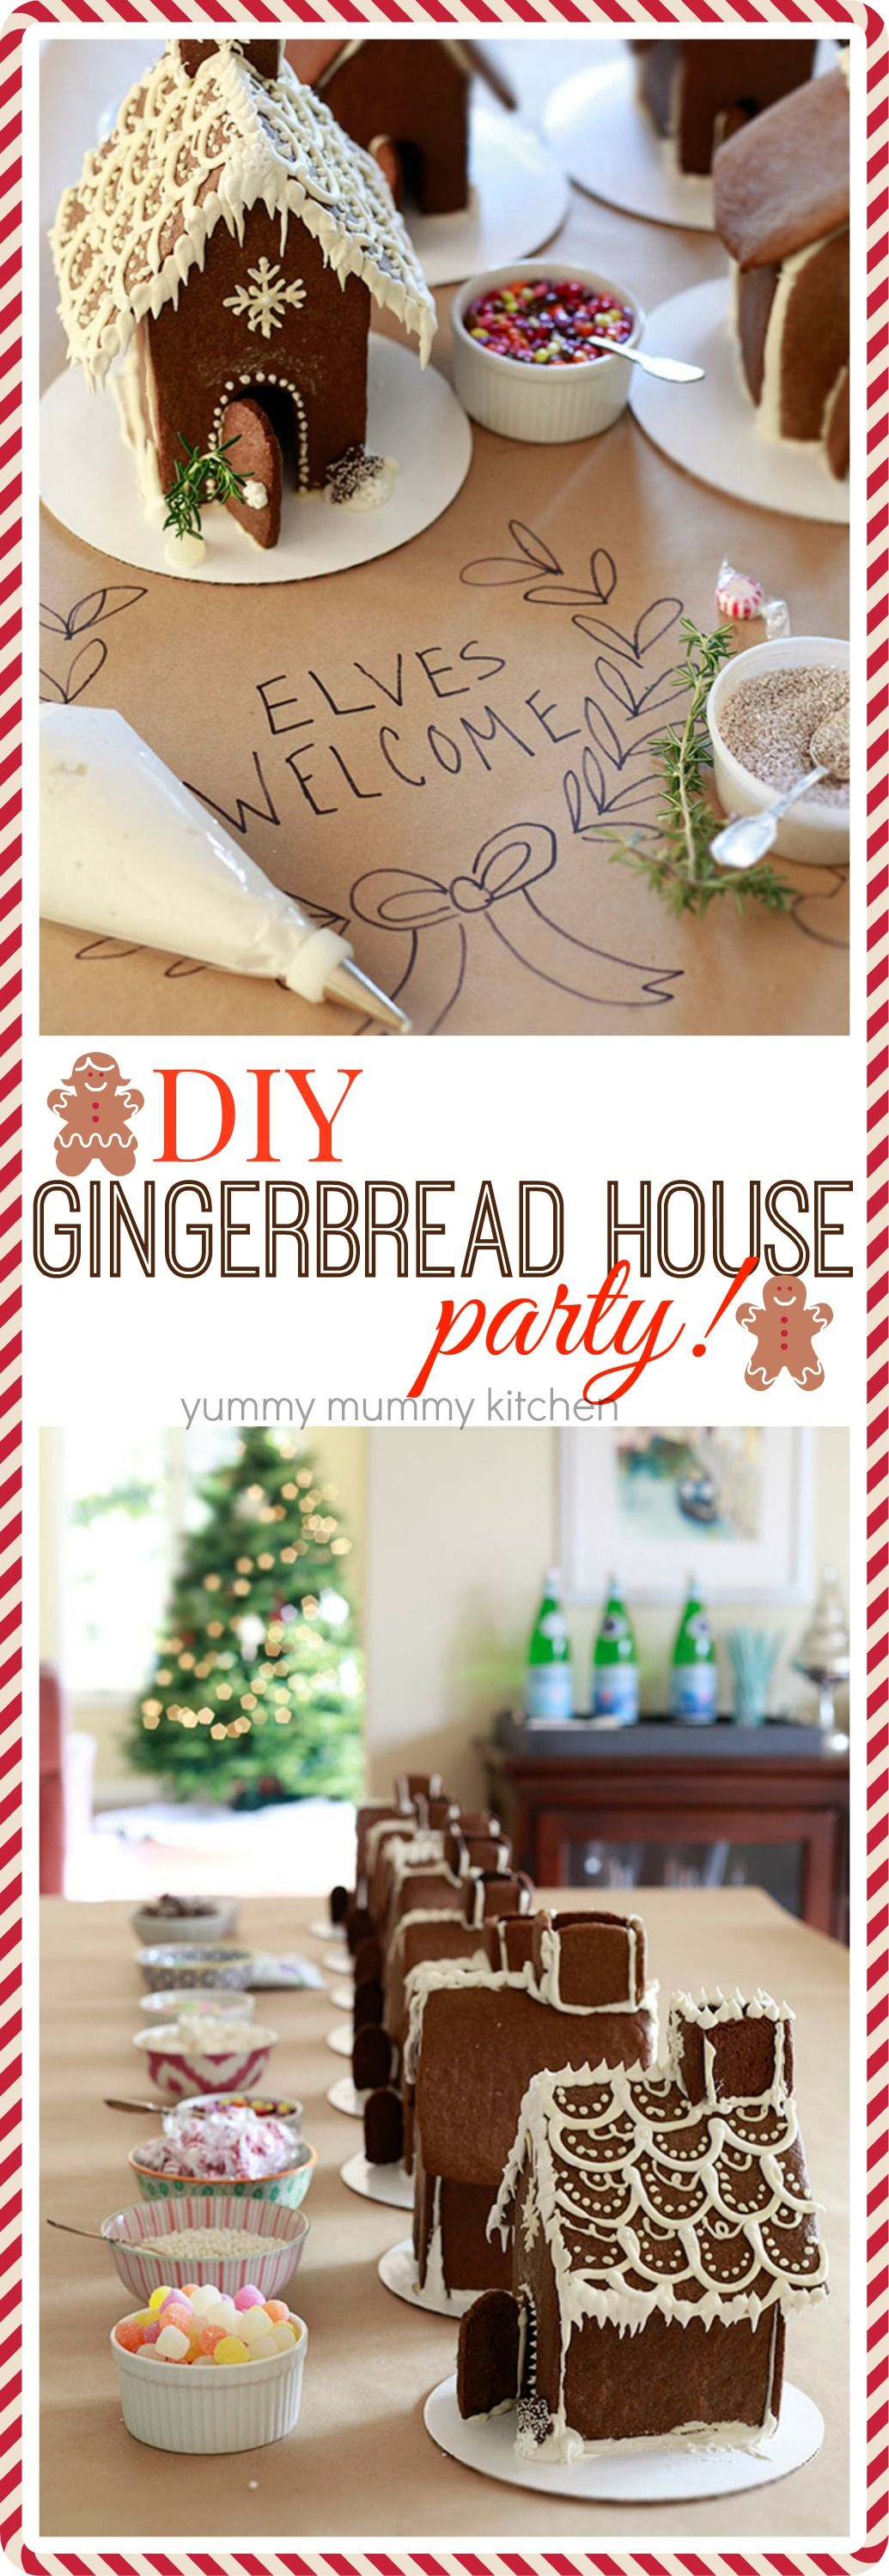 Make your own gingerbread house party We love making